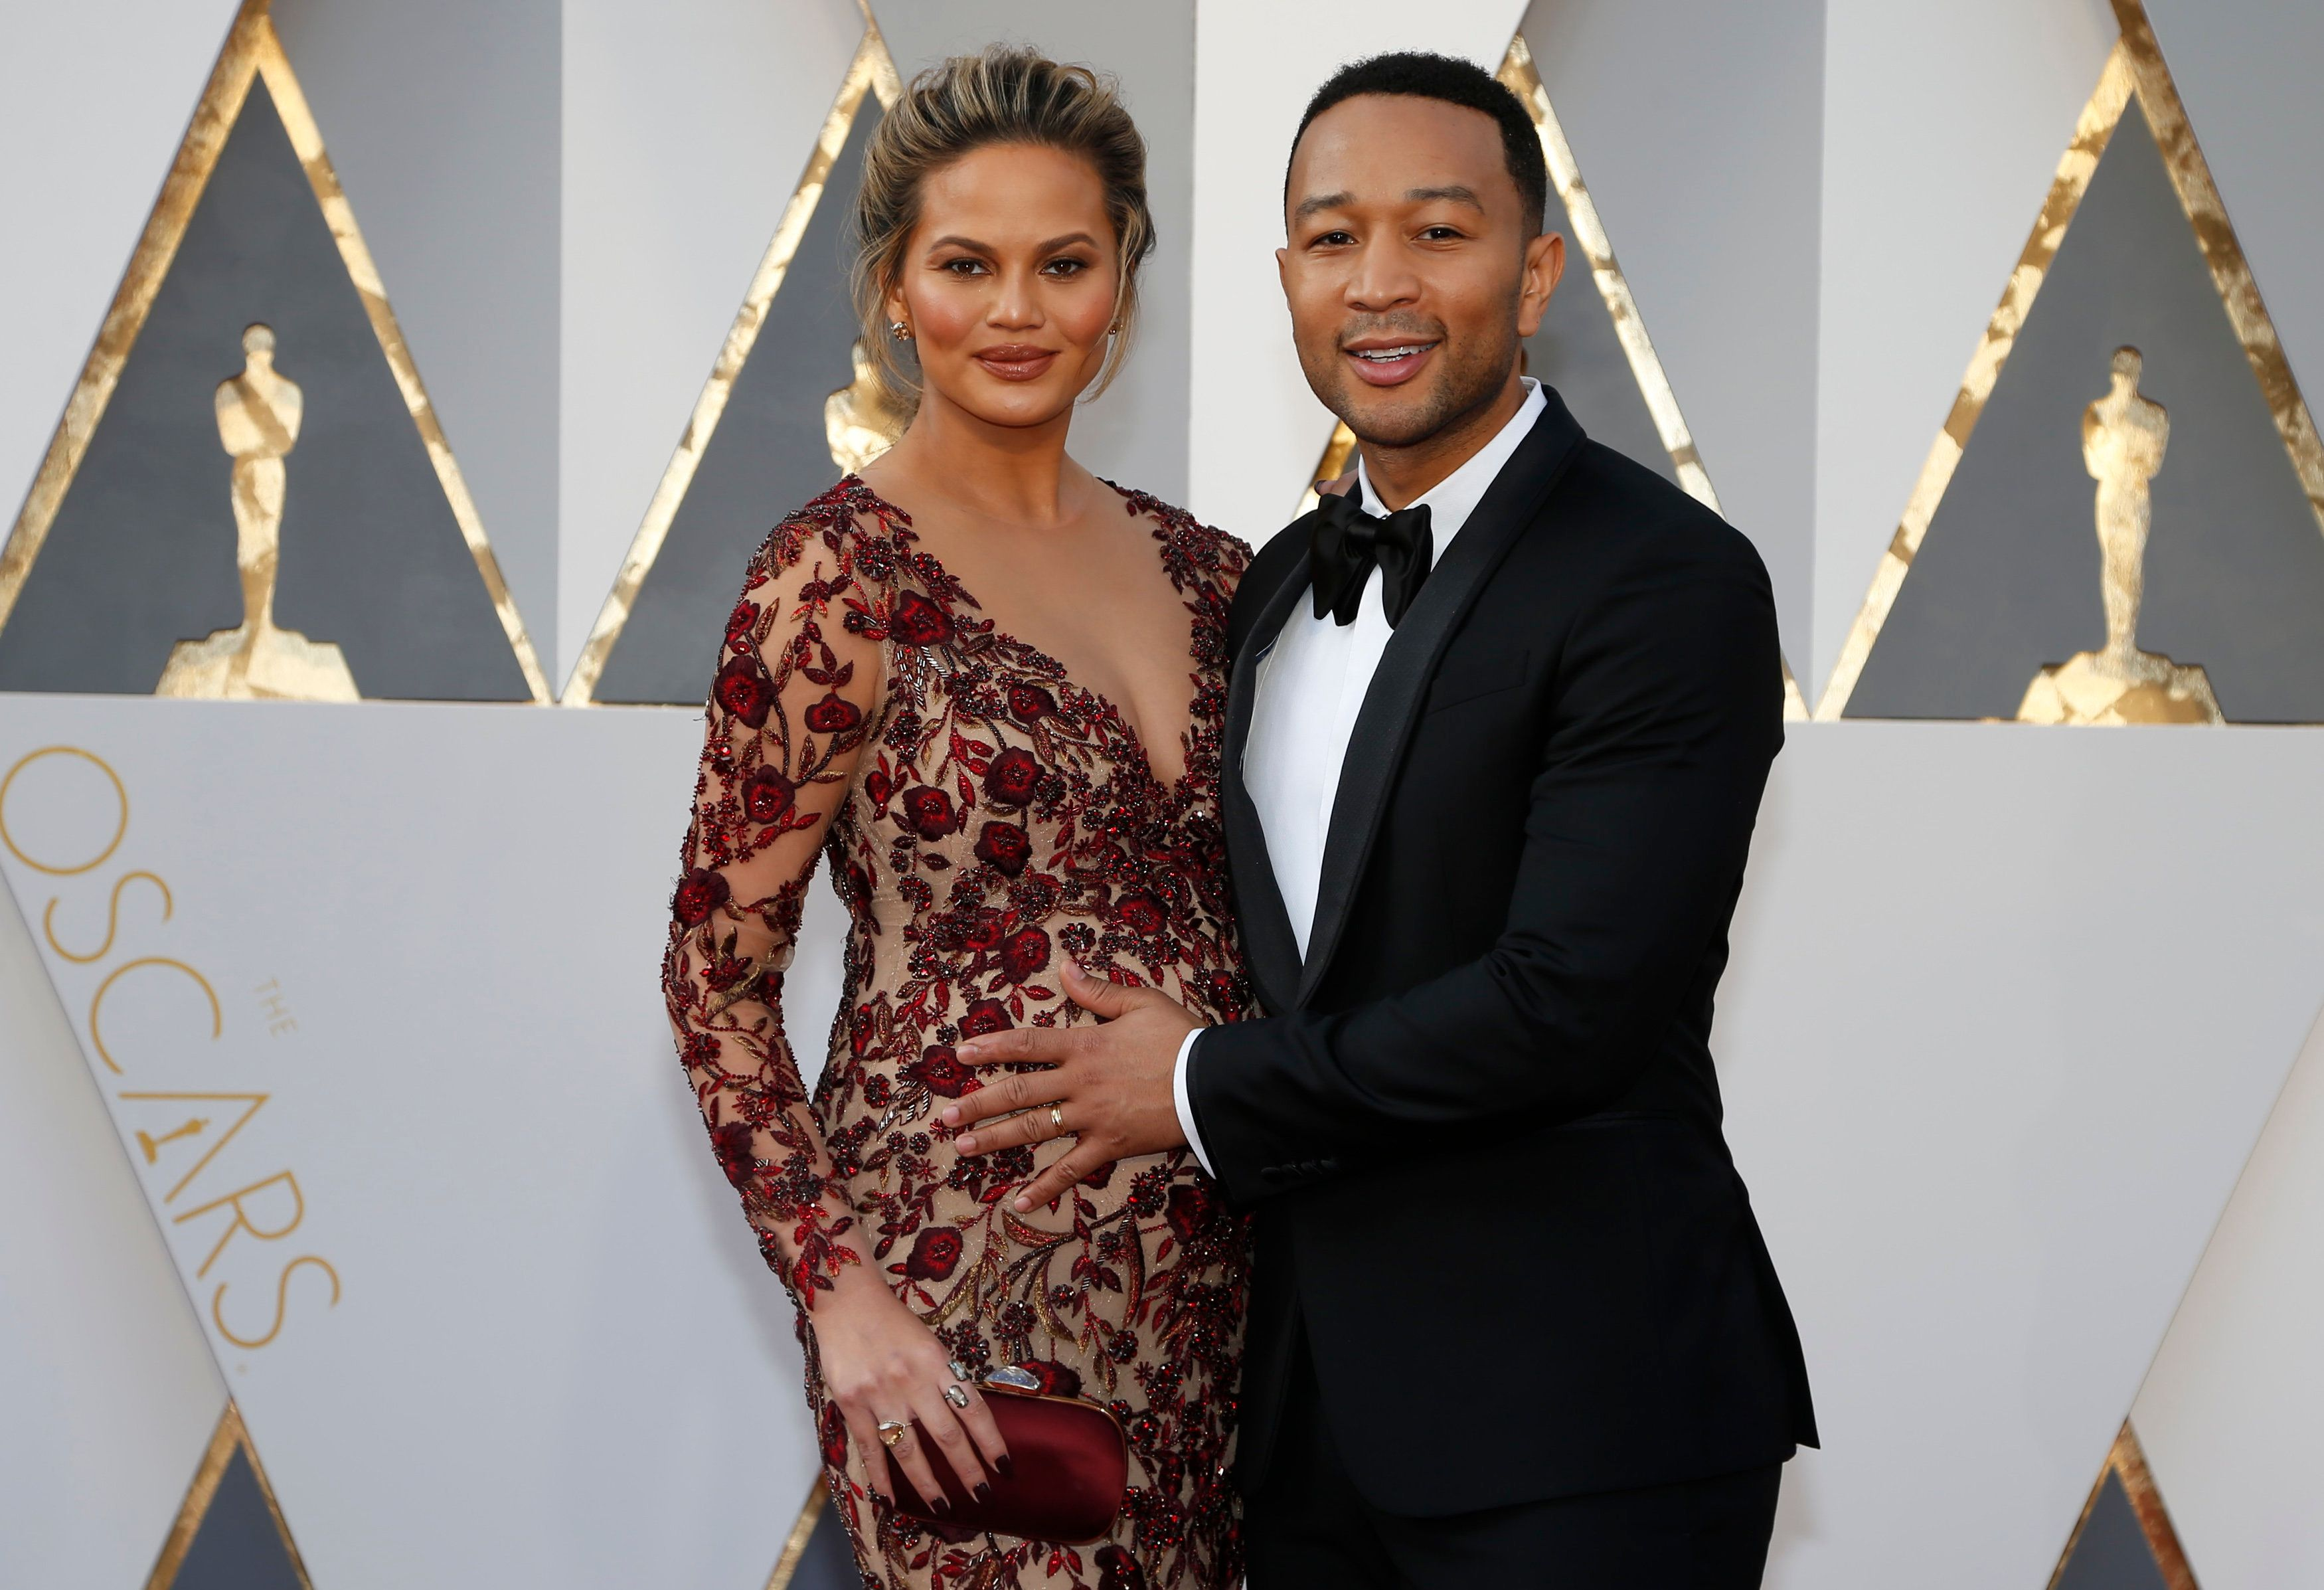 Singer John Legend and wife Chrissy Teigen arrive at the 88th Academy Awards in Hollywood, California February 28, 2016.  REUTERS/Lucy Nicholson